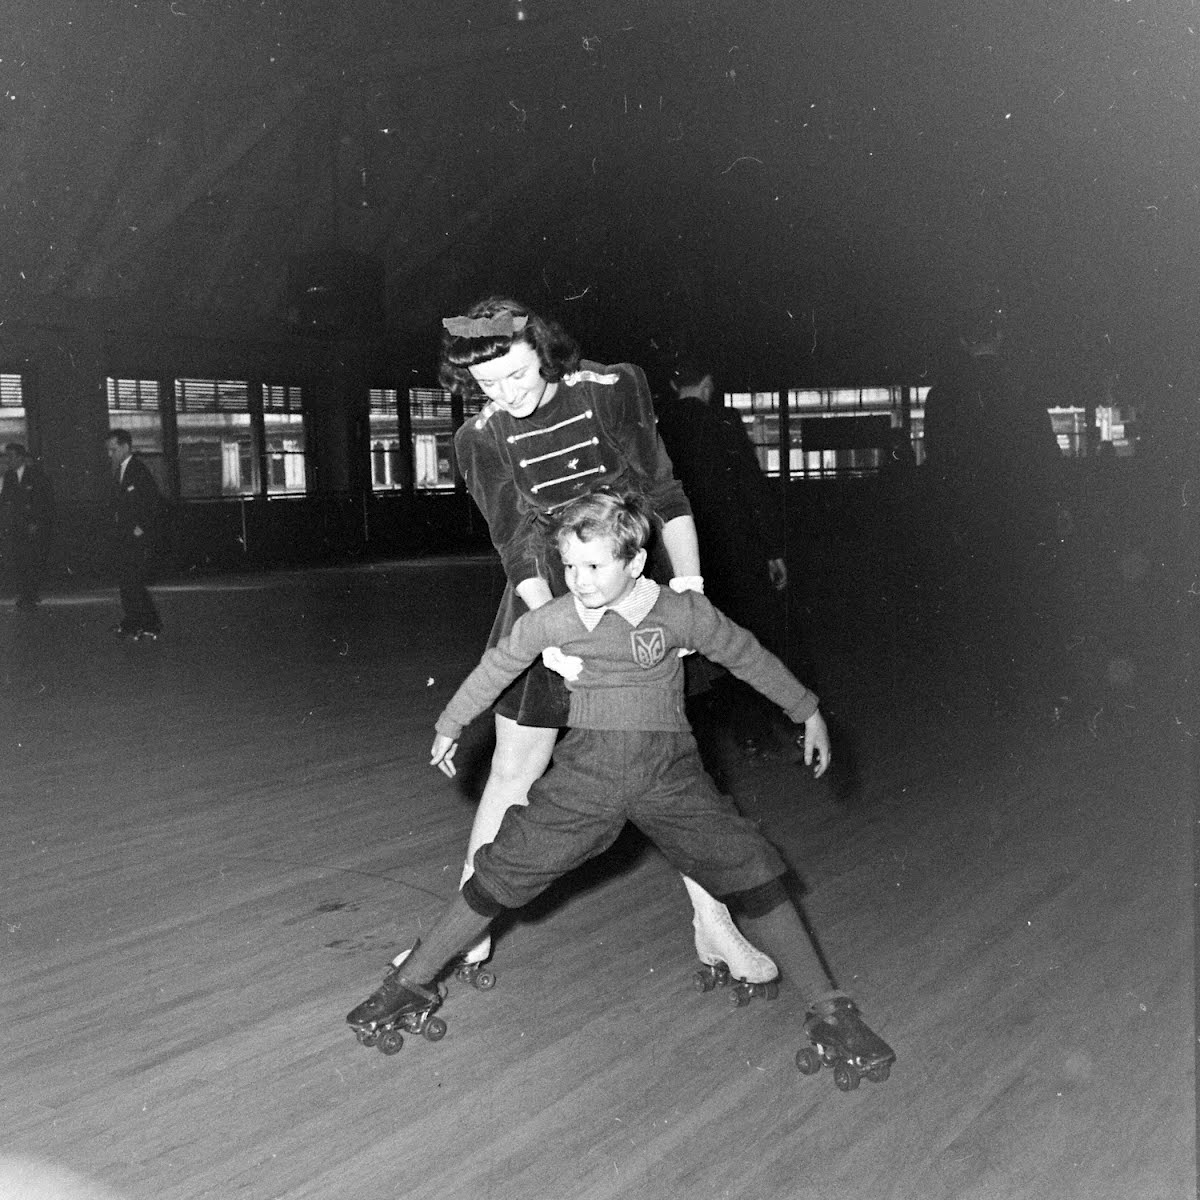 66-Girl In Skating Ring